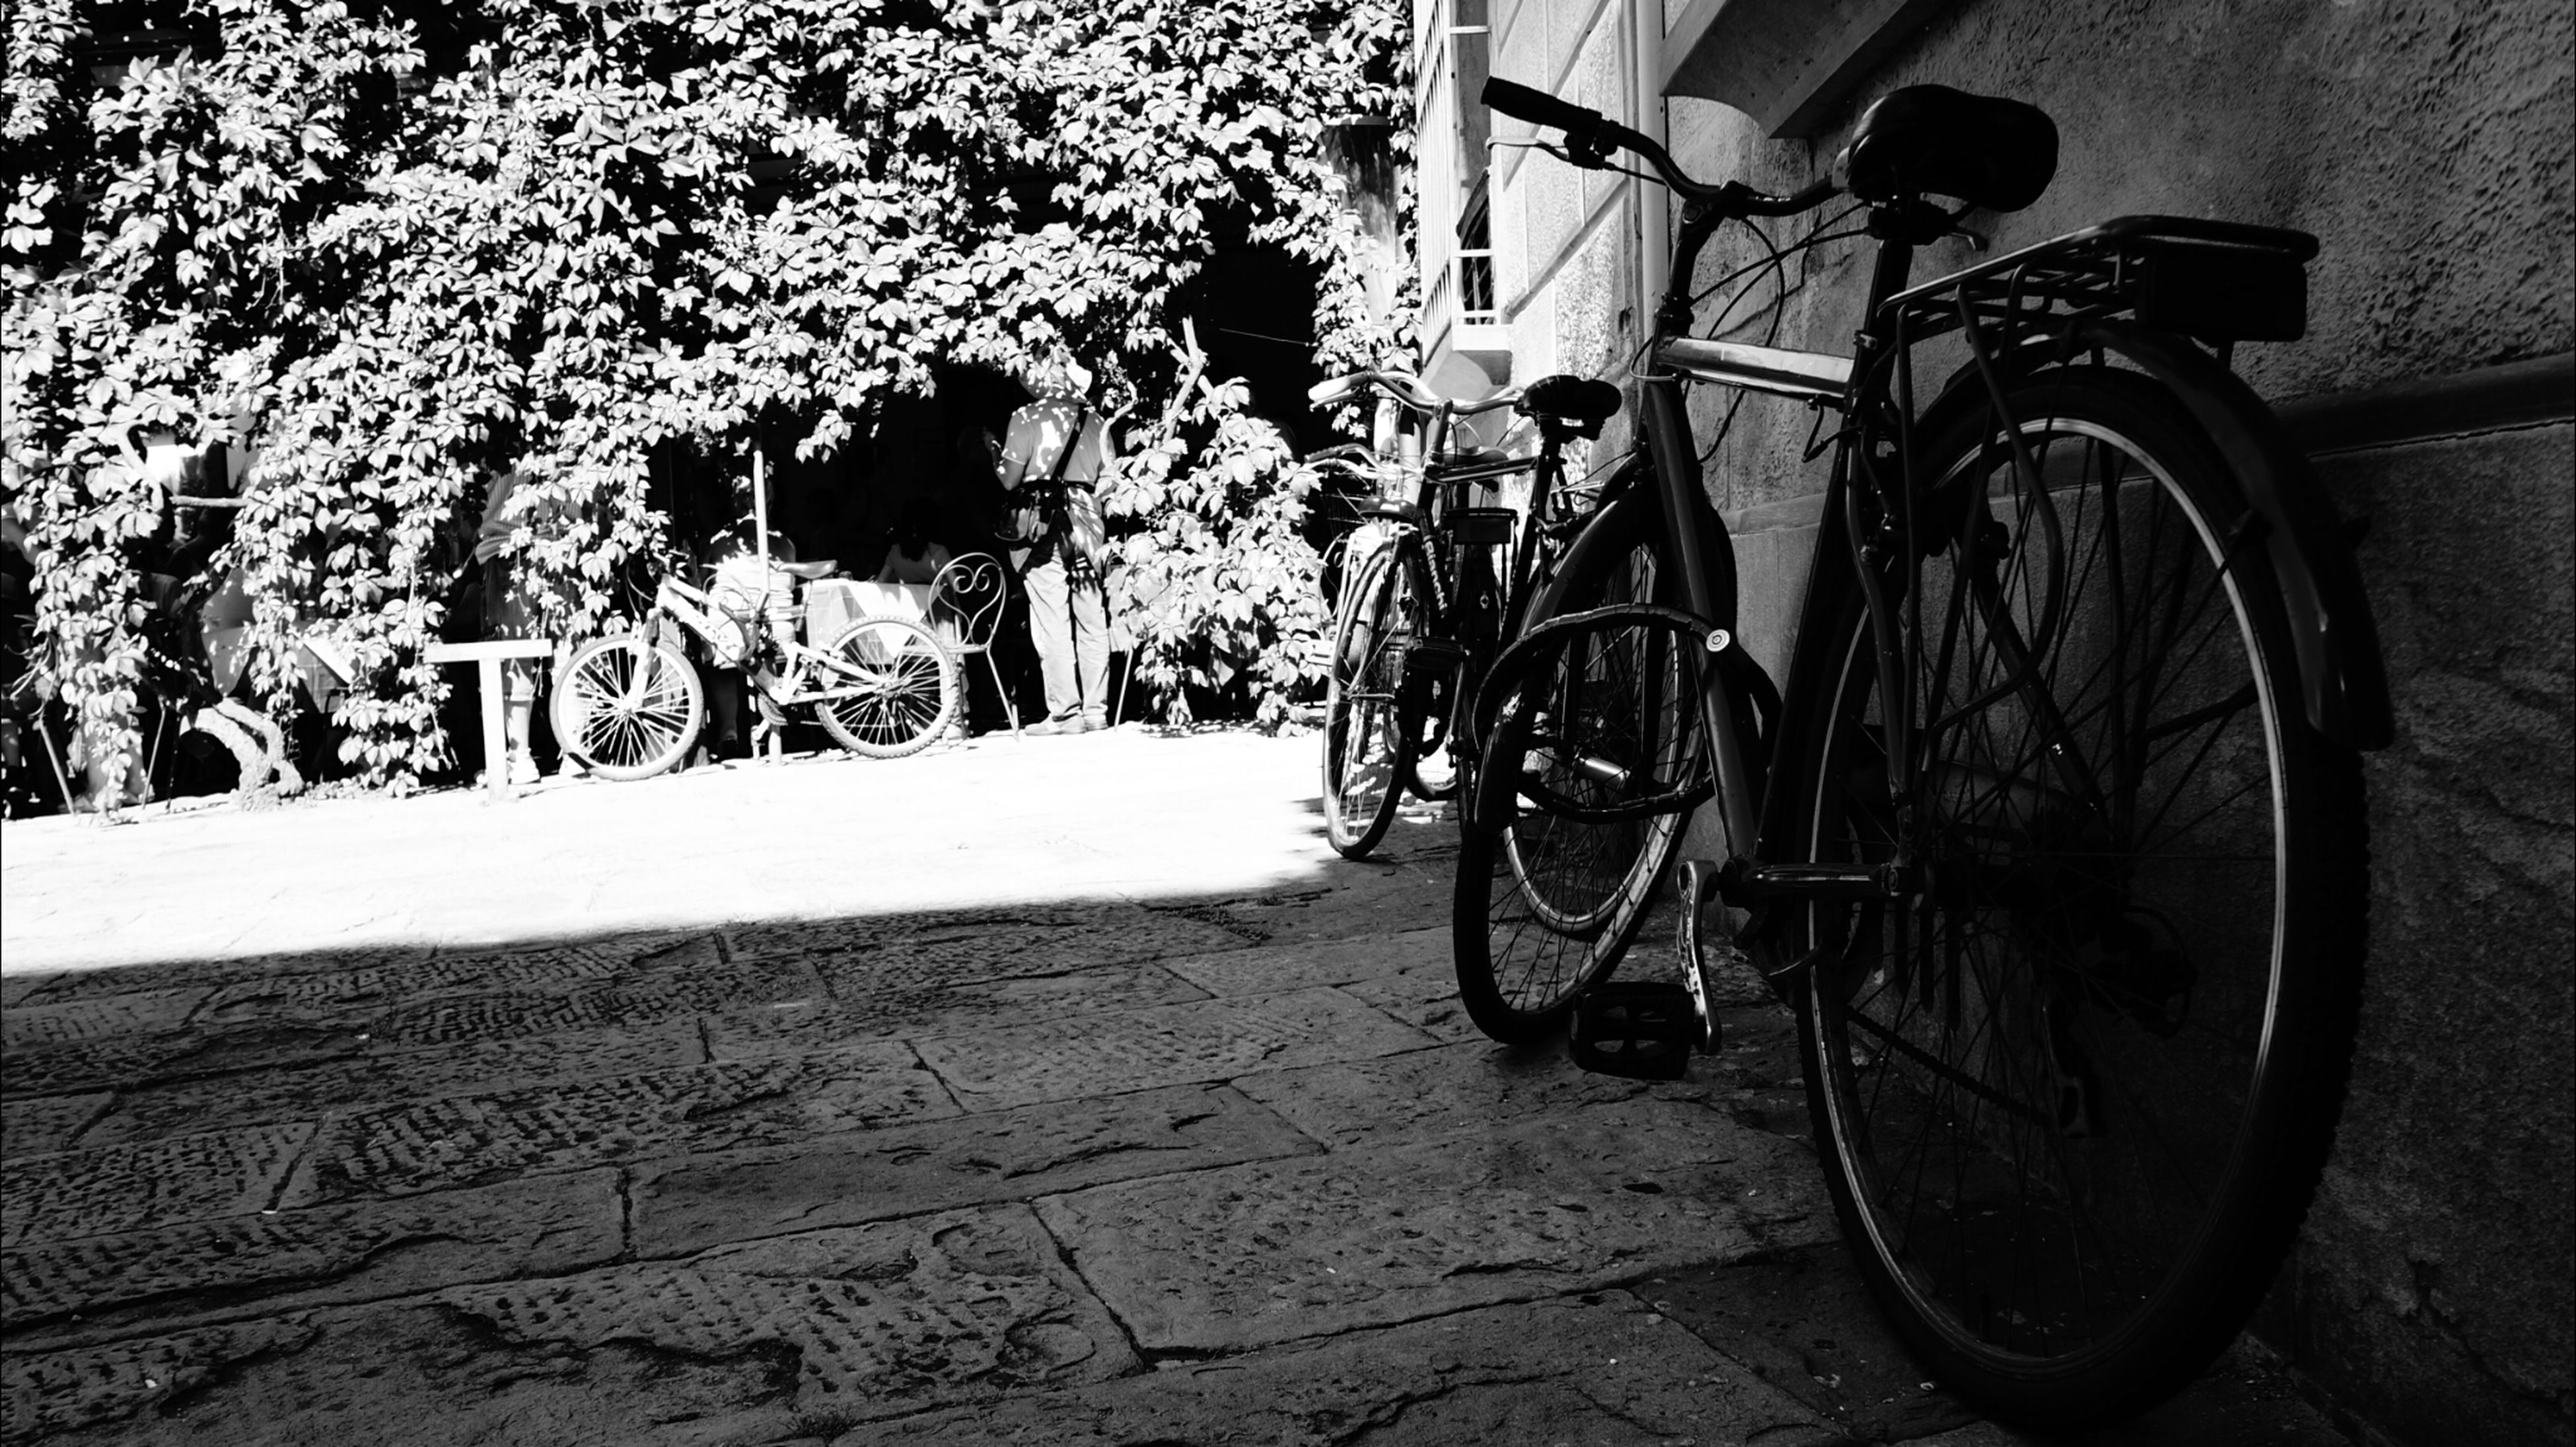 bicycle, transportation, mode of transport, land vehicle, parked, stationary, parking, wheel, wall - building feature, wall, street, shadow, day, outdoors, no people, sunlight, built structure, absence, plant, sidewalk